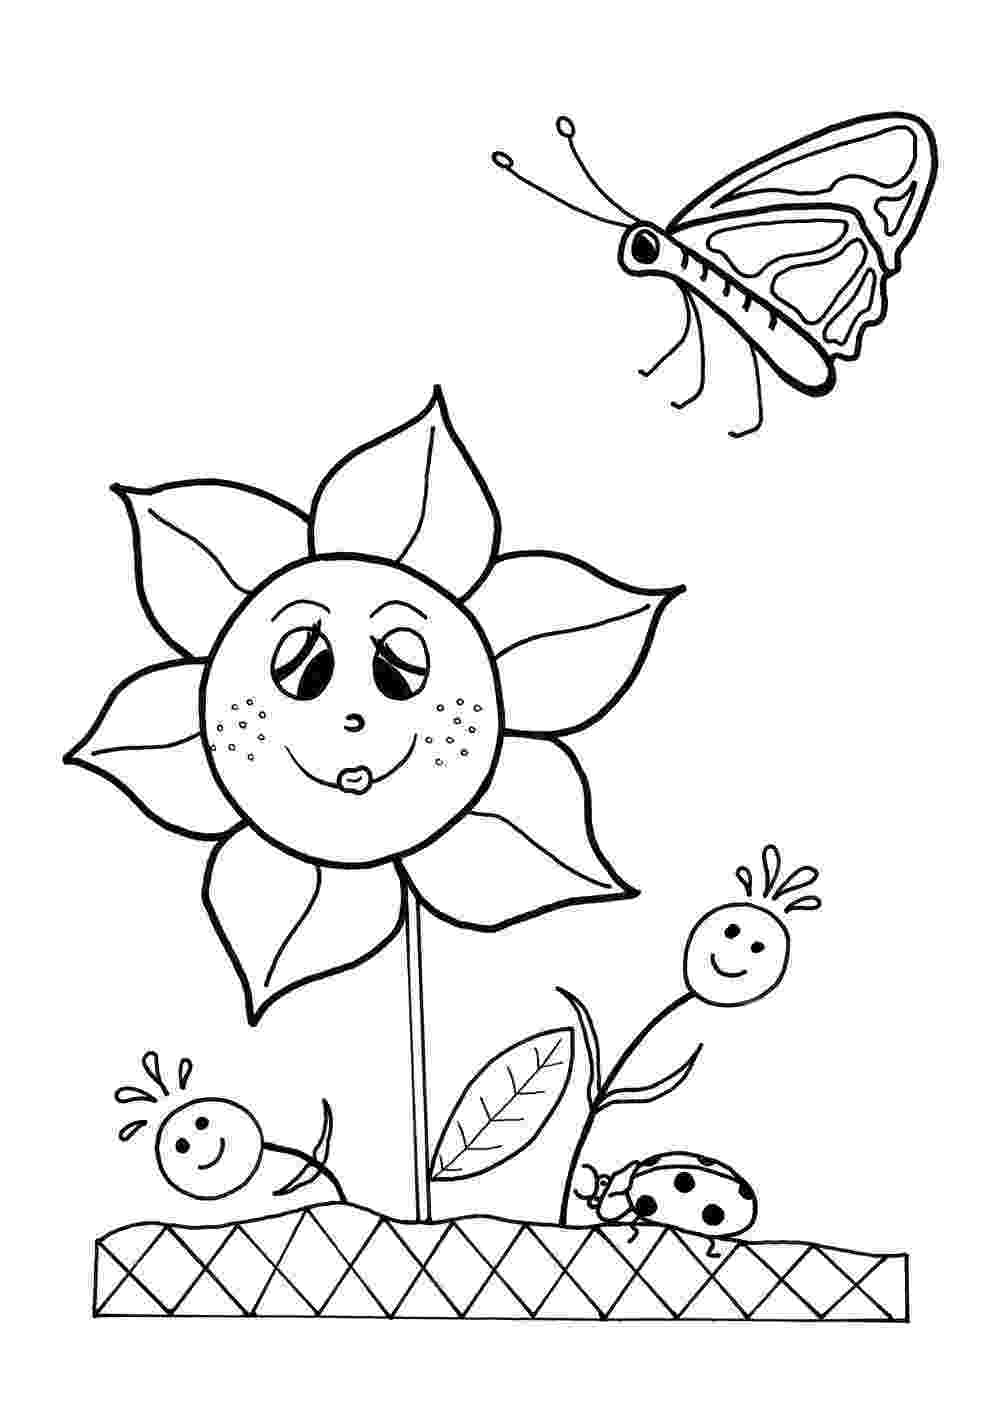 spring flowers printable coloring pages printable spring flower coloring pages best coloring pages spring flowers coloring printable